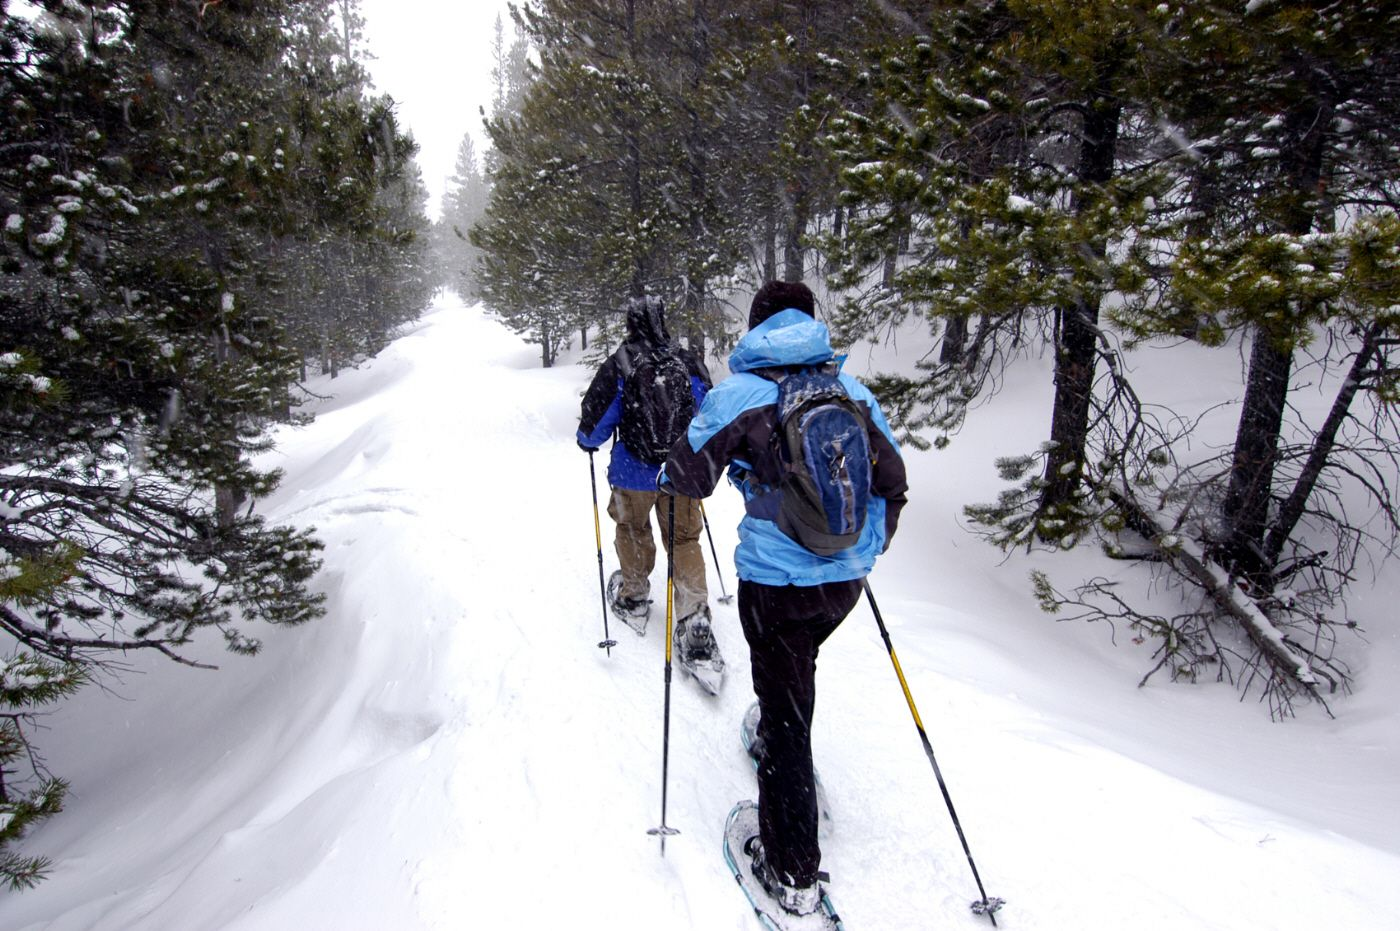 Ease your walking on snow to explore snowy mountain with